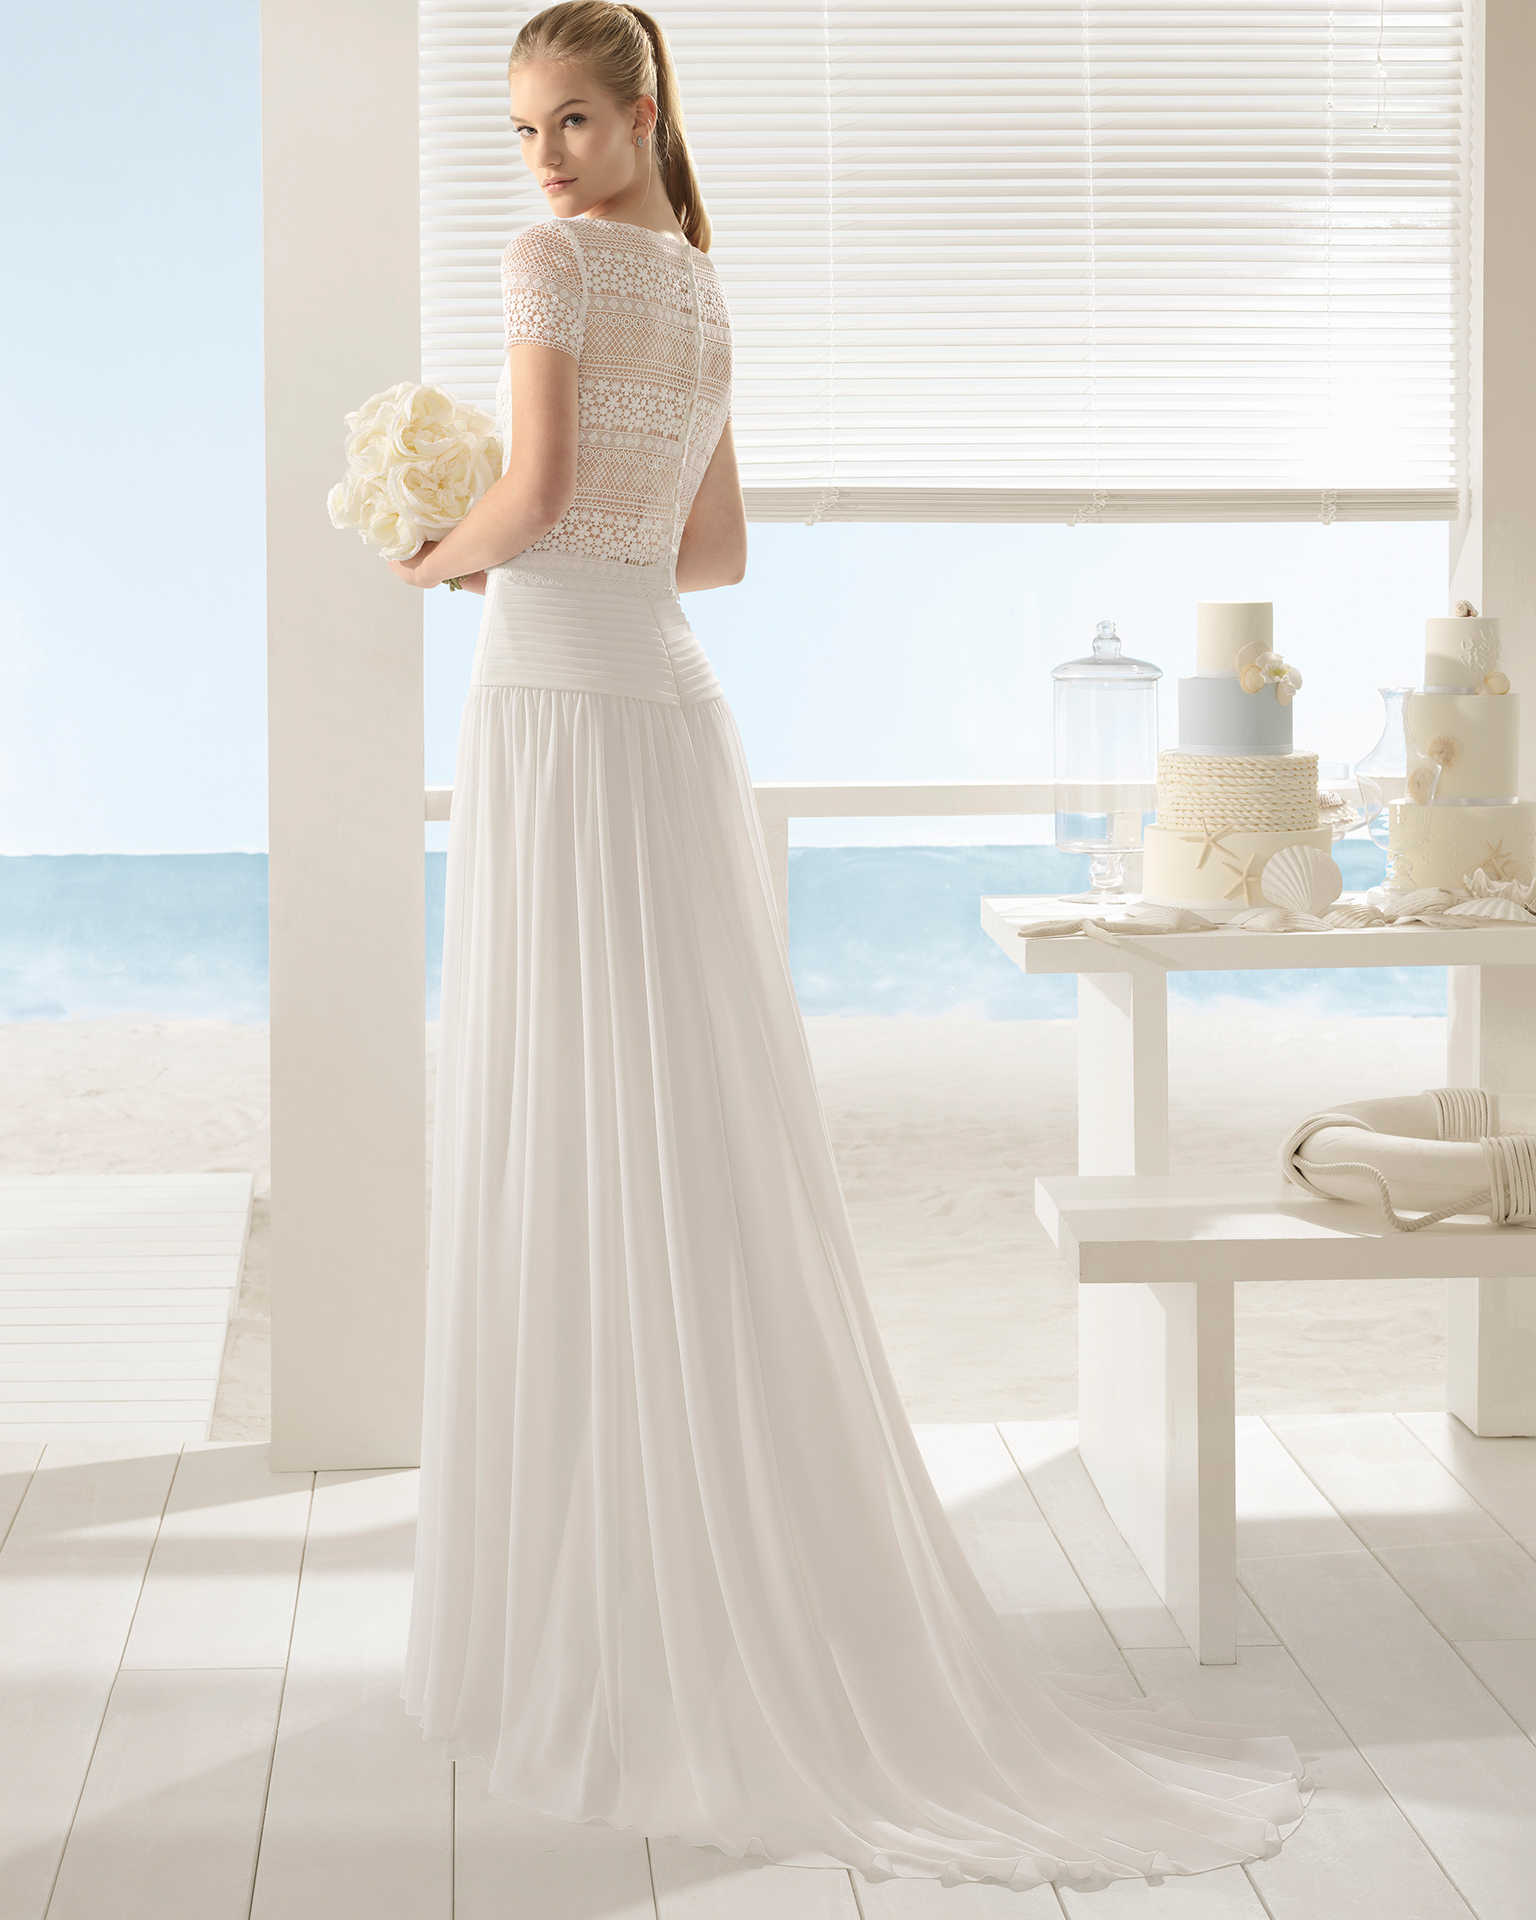 Boho-style three-piece crepe Georgette and lace wedding dress with short sleeves.